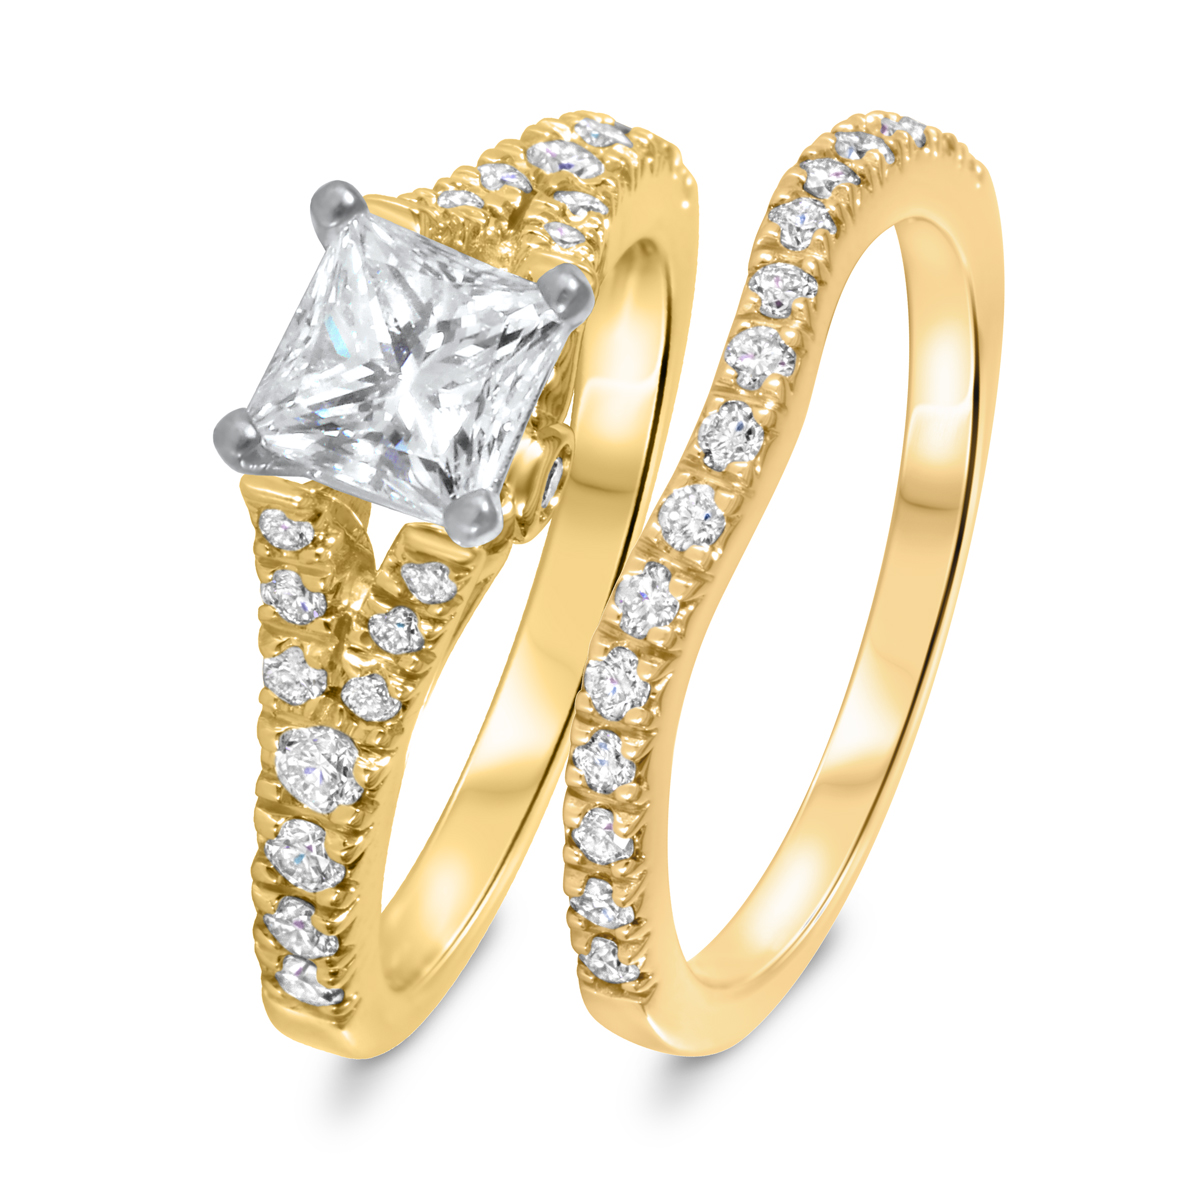 1 3/4 CT. T.W. Diamond Women's Bridal Wedding Ring Set 14K Yellow Gold